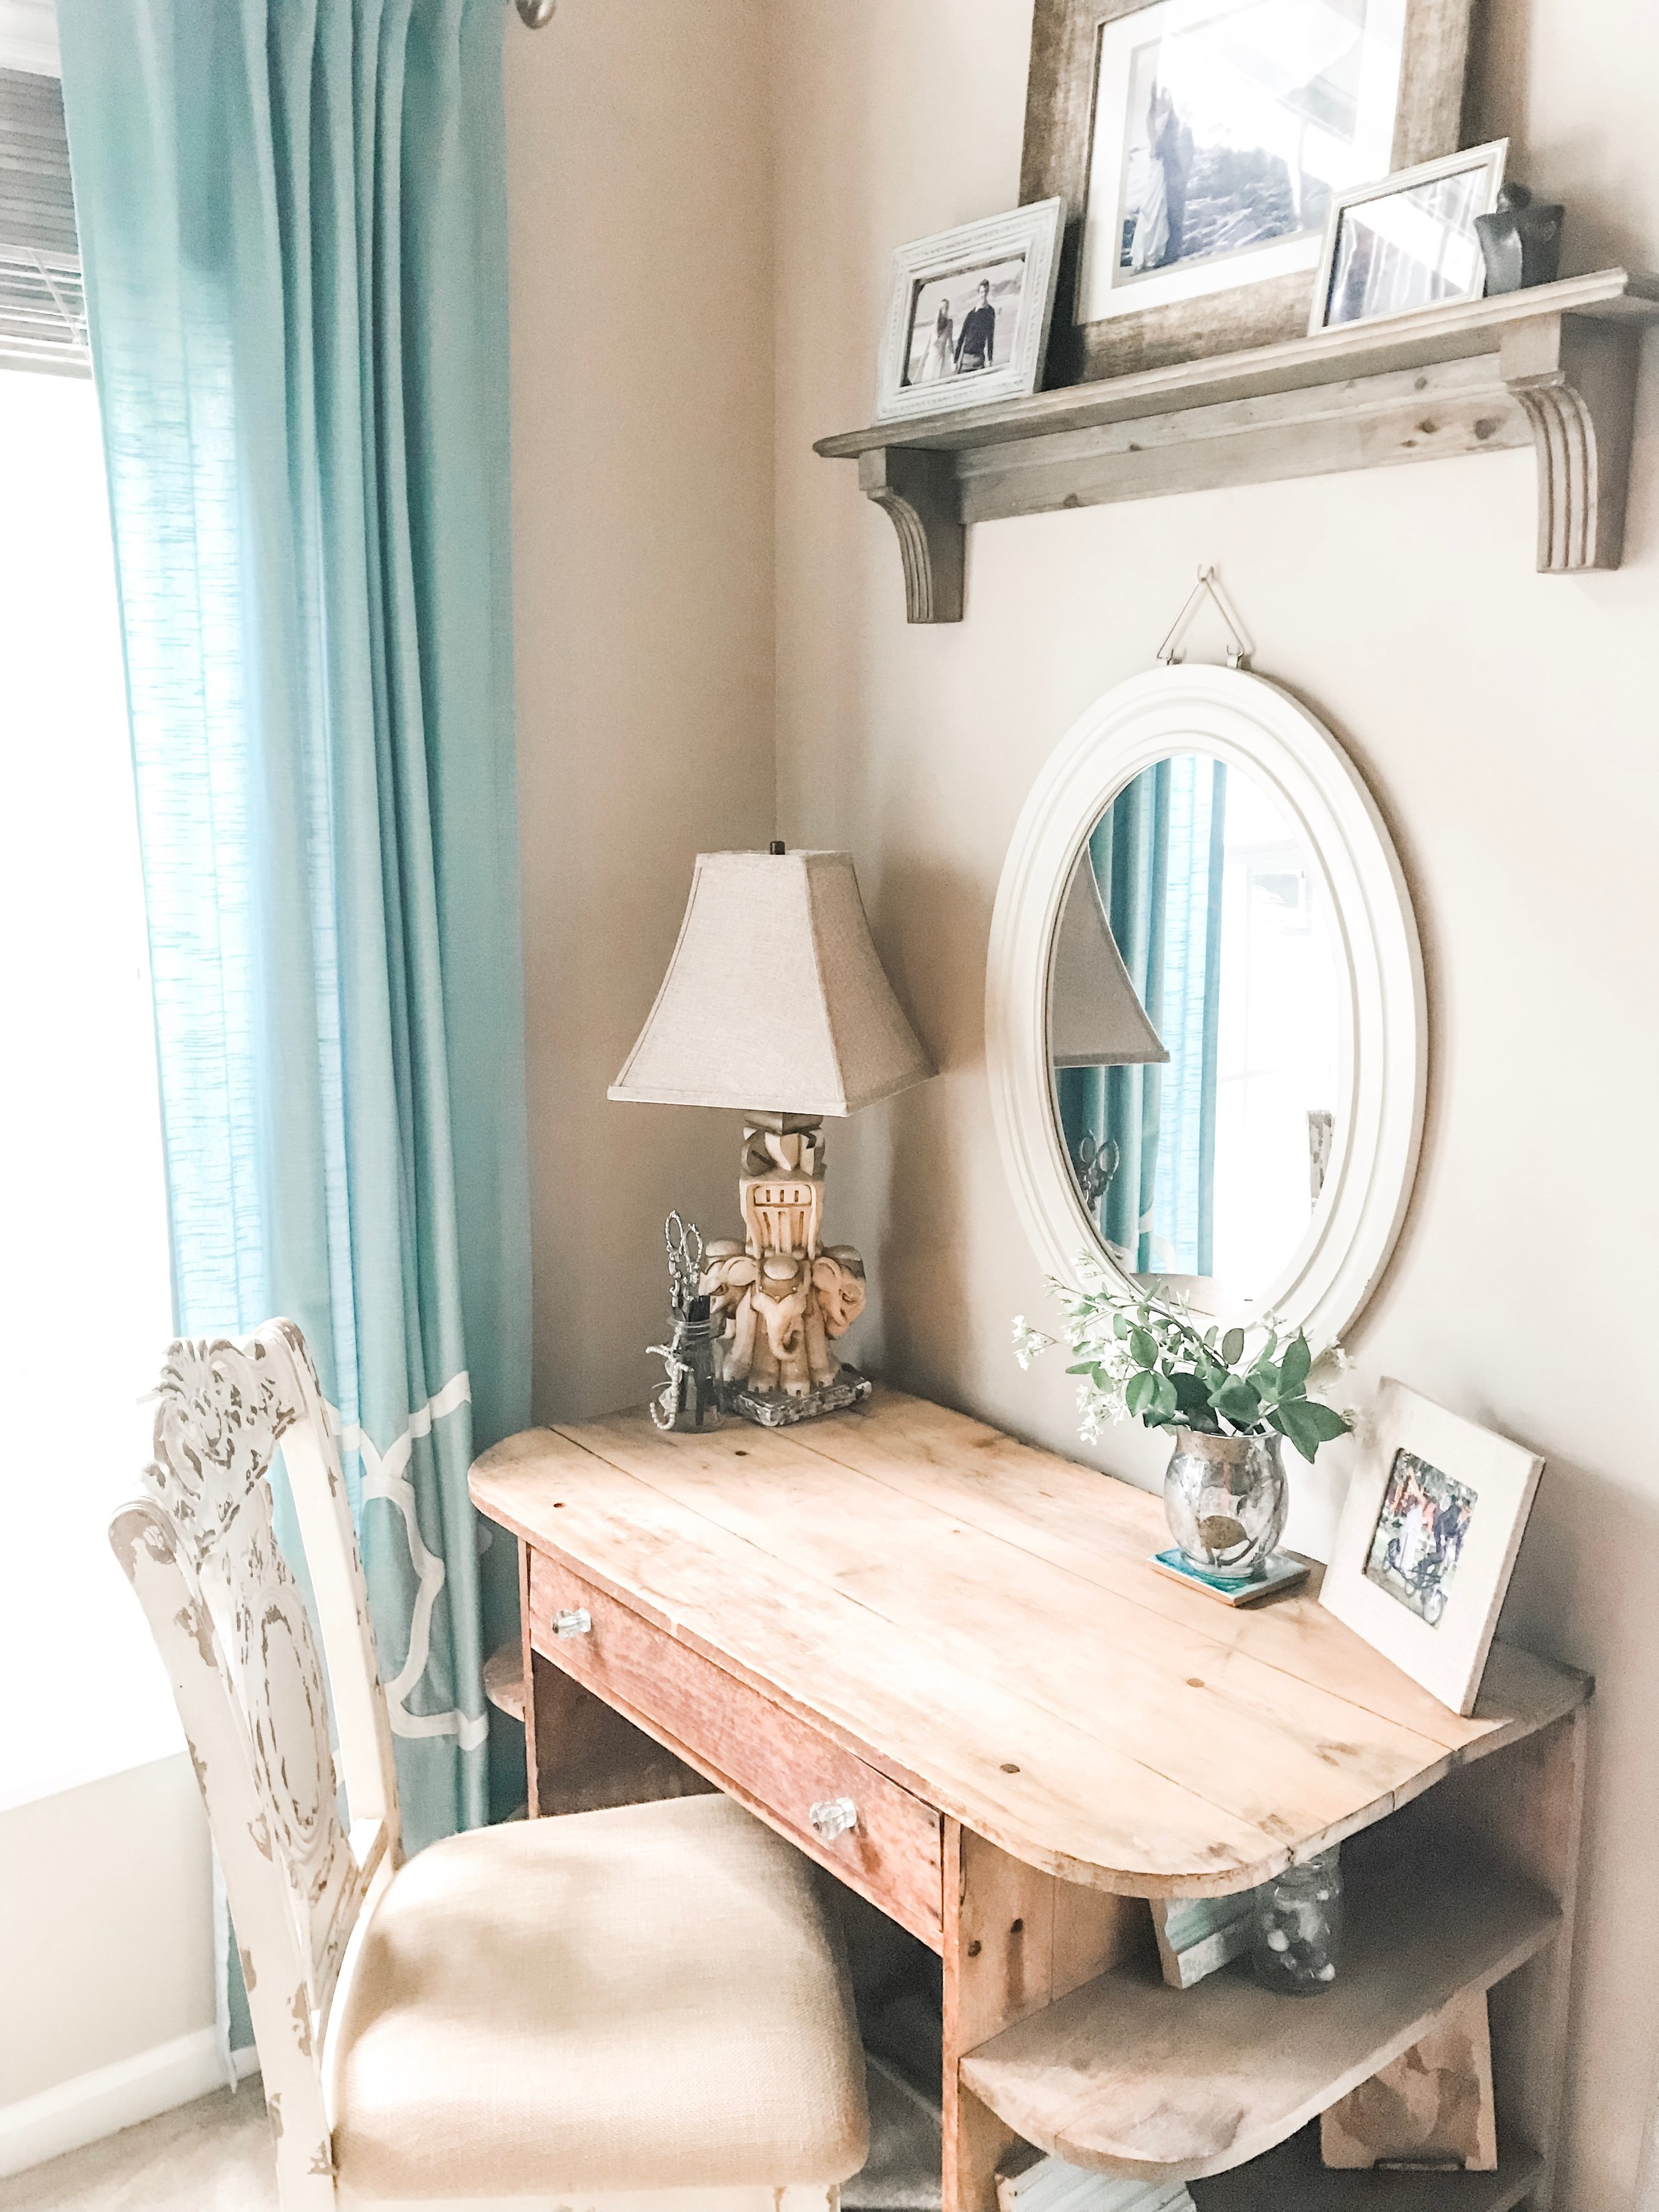 My Dad's Desk - The desk my dad built when he was 15 is one of my most treasured possessions. When I saw it had weathered the storm, my heart swelled.